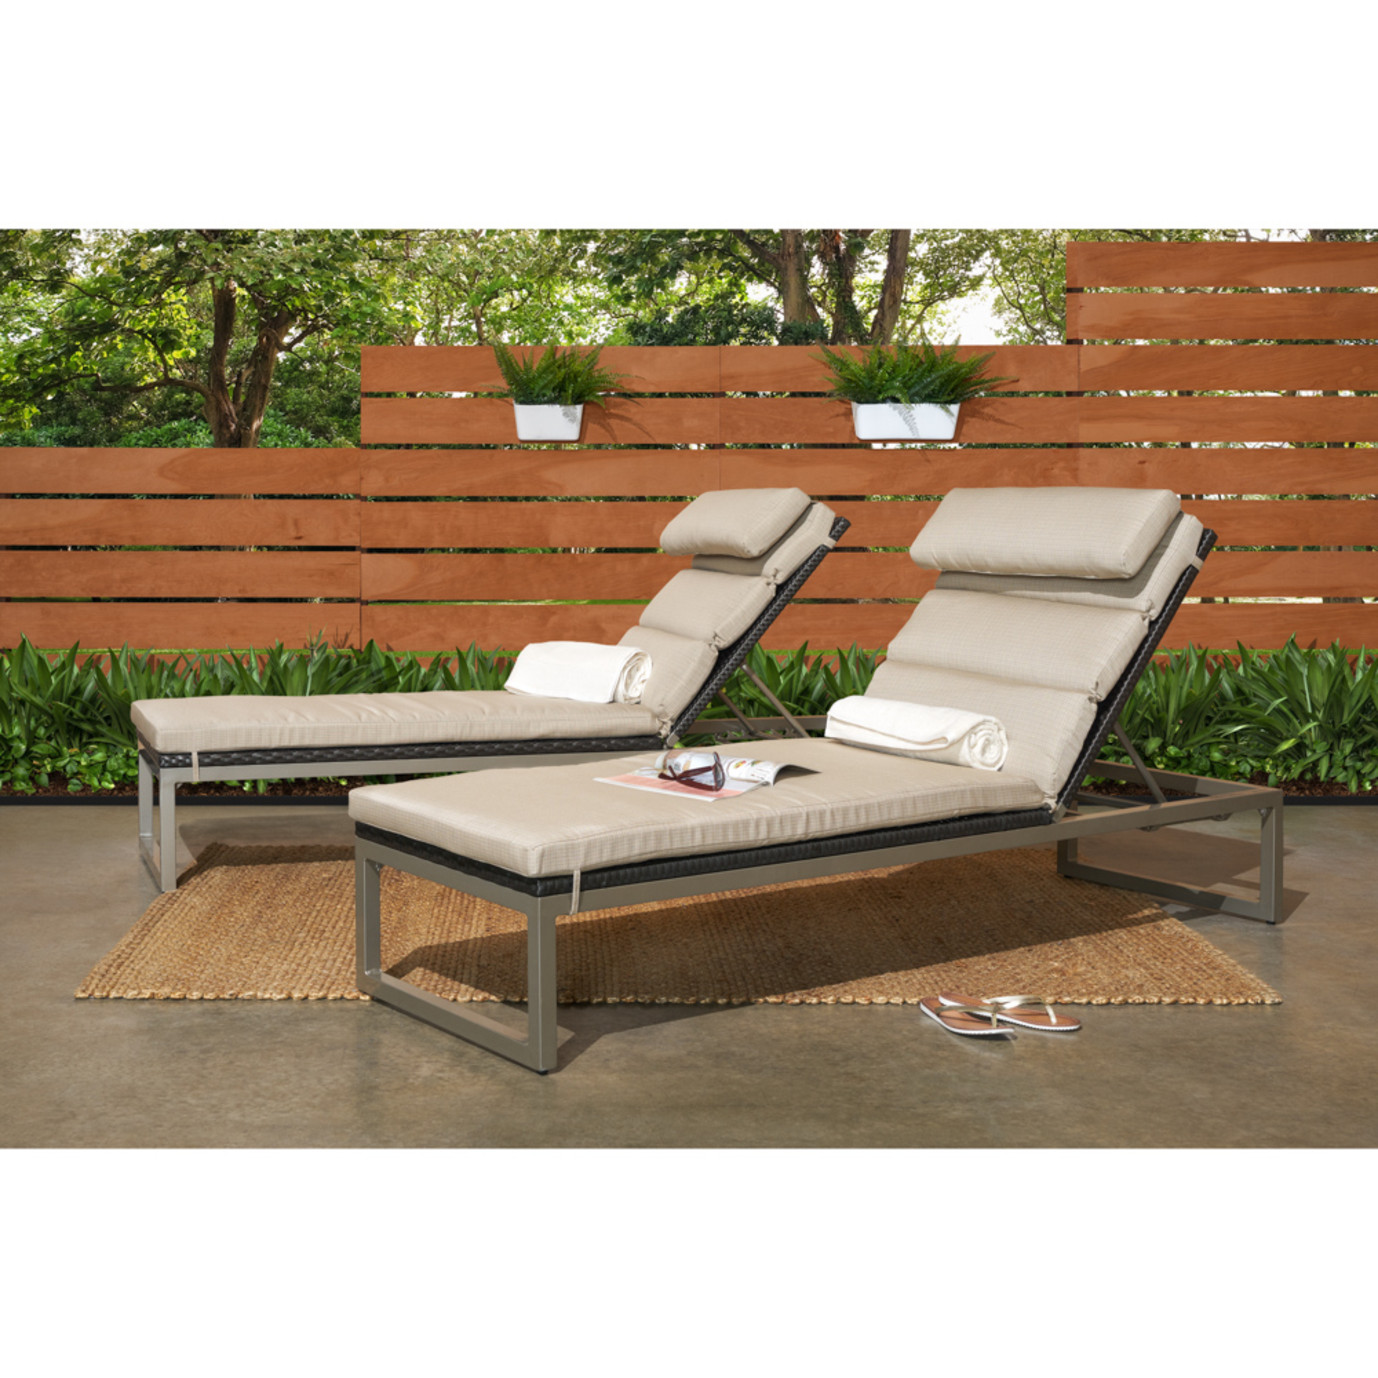 Milo™ Espresso Chaise Lounges - Slate Gray